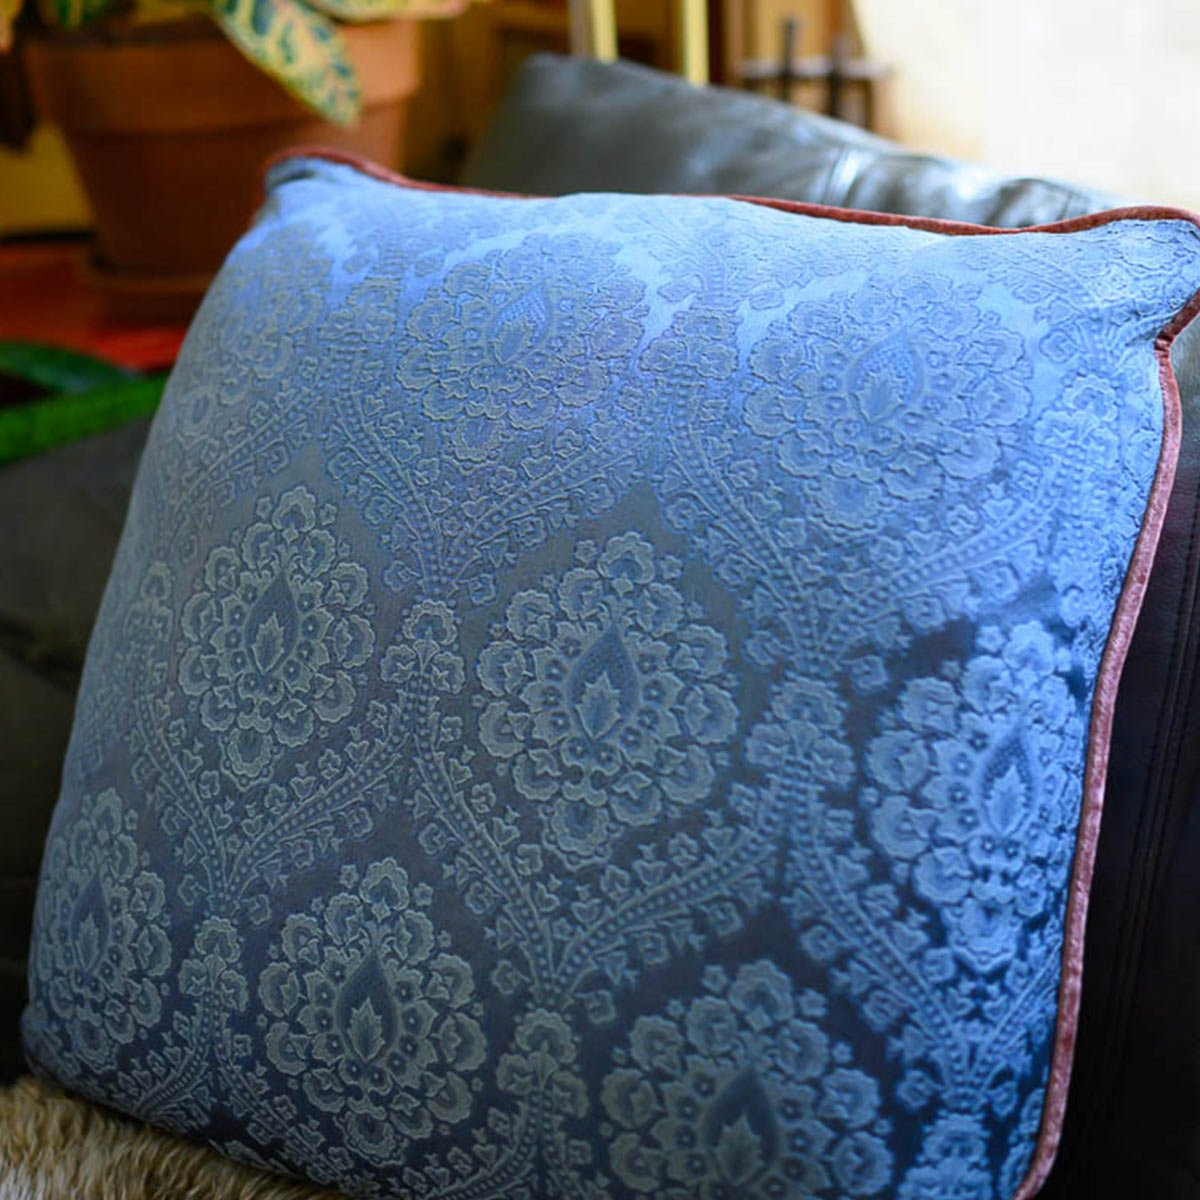 pair_of_pillows_21_square_floral_motif_on_black-MLP_6280